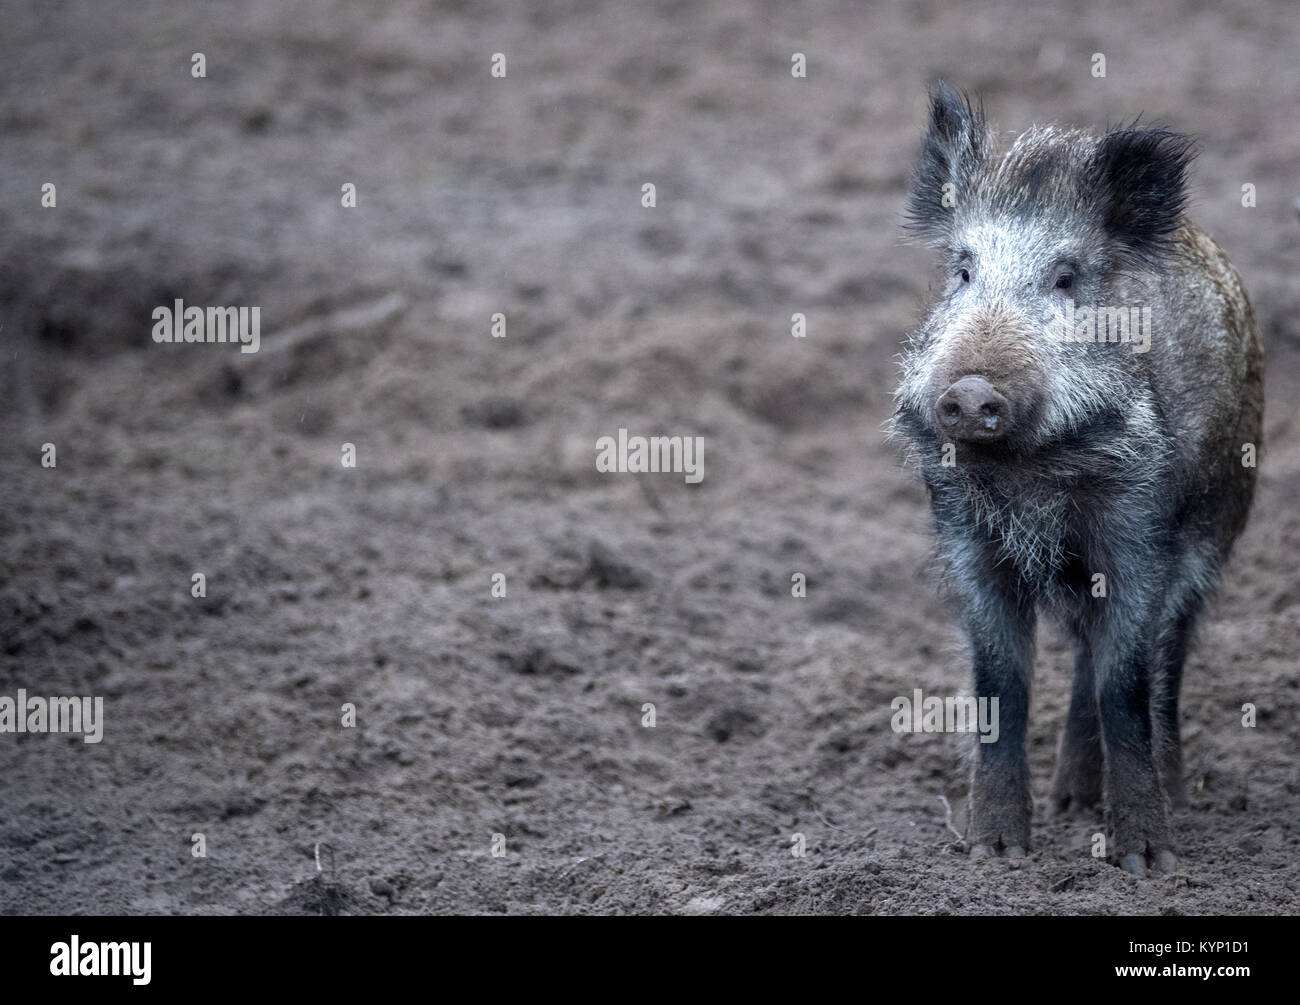 Shooting Boar Photos & Shooting Boar Images - Alamy